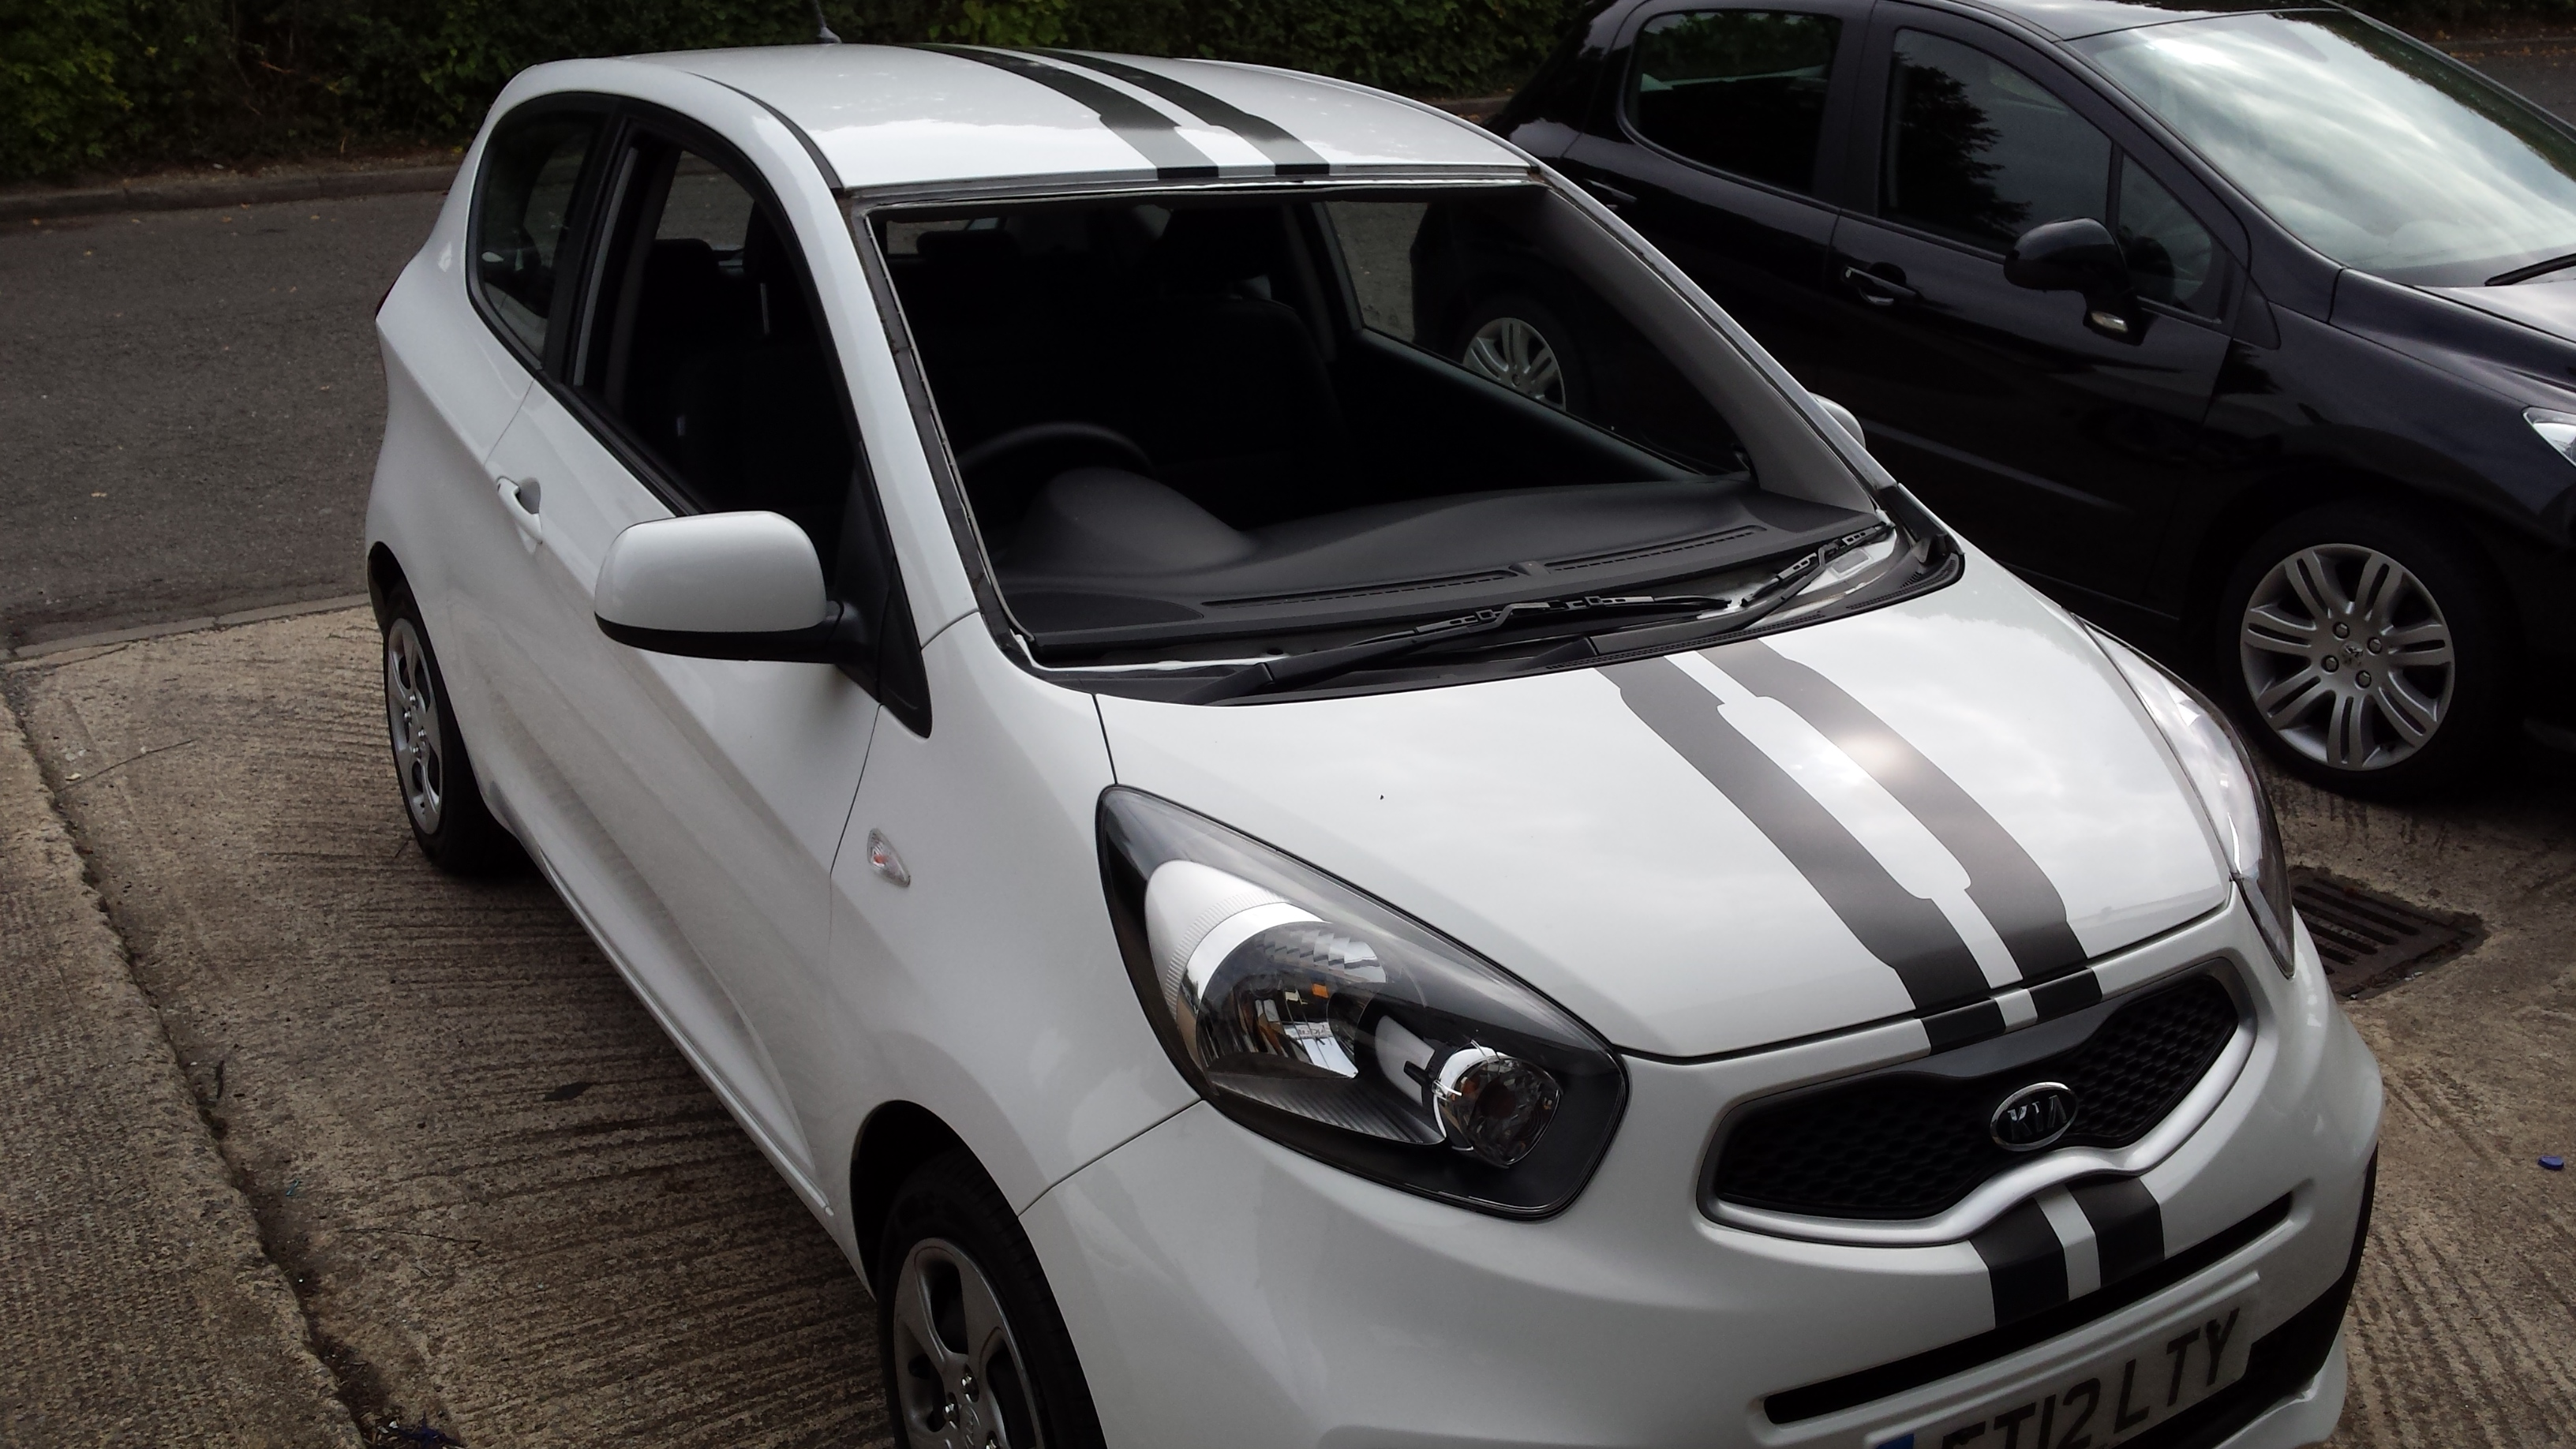 Kia Vinyl Graphics Stripes